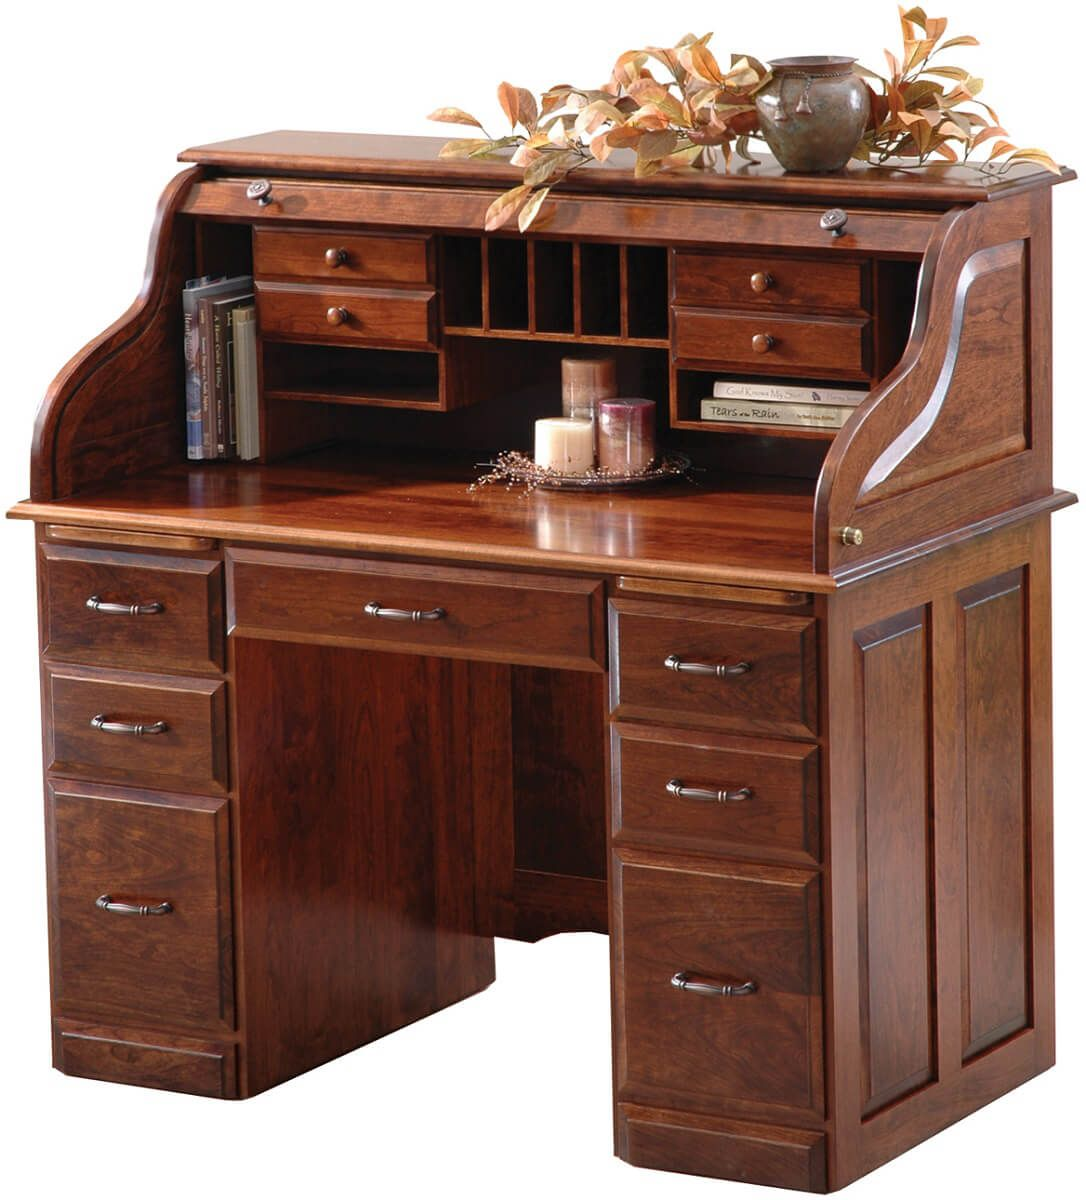 Treasurer's Roll Top Desk